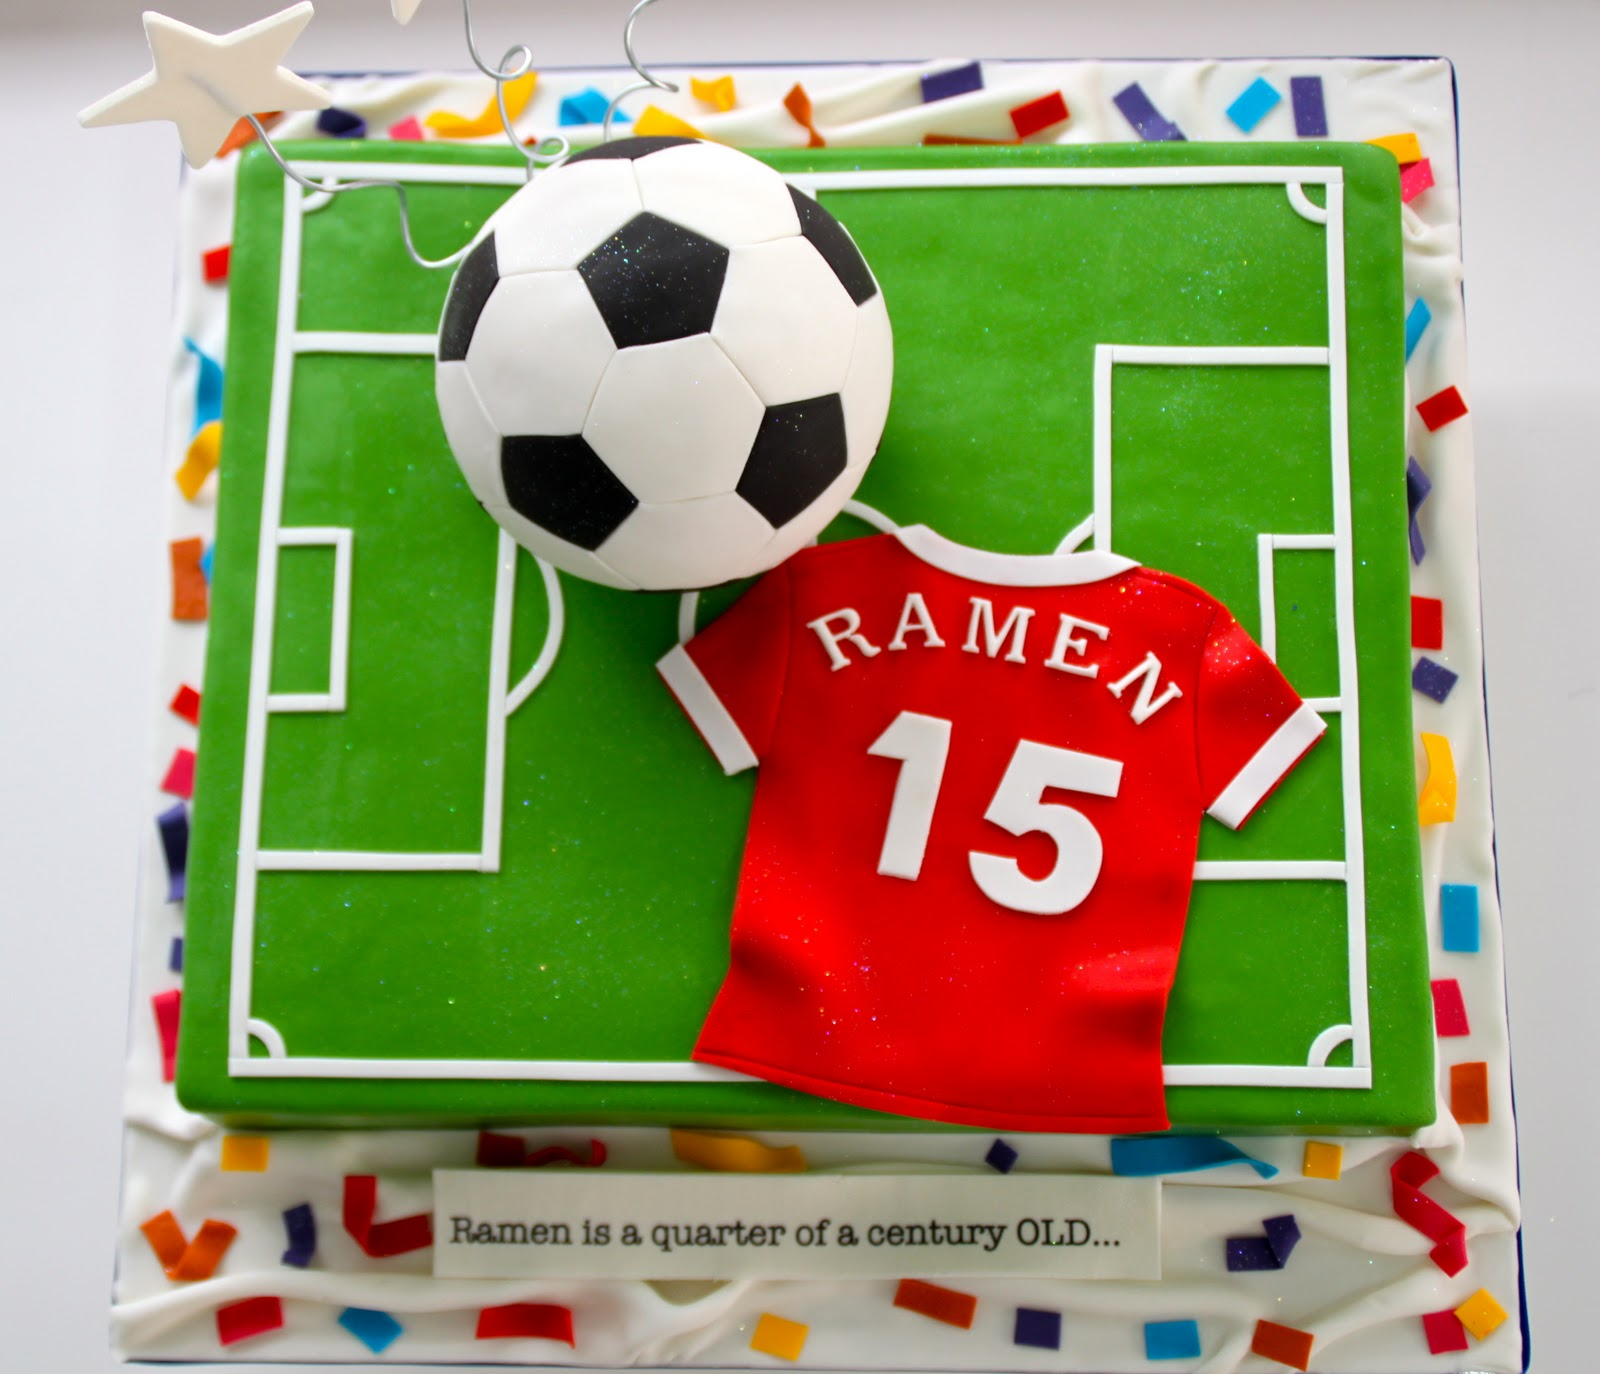 Soccer Cake: Celebrate With Cake!: March 2011